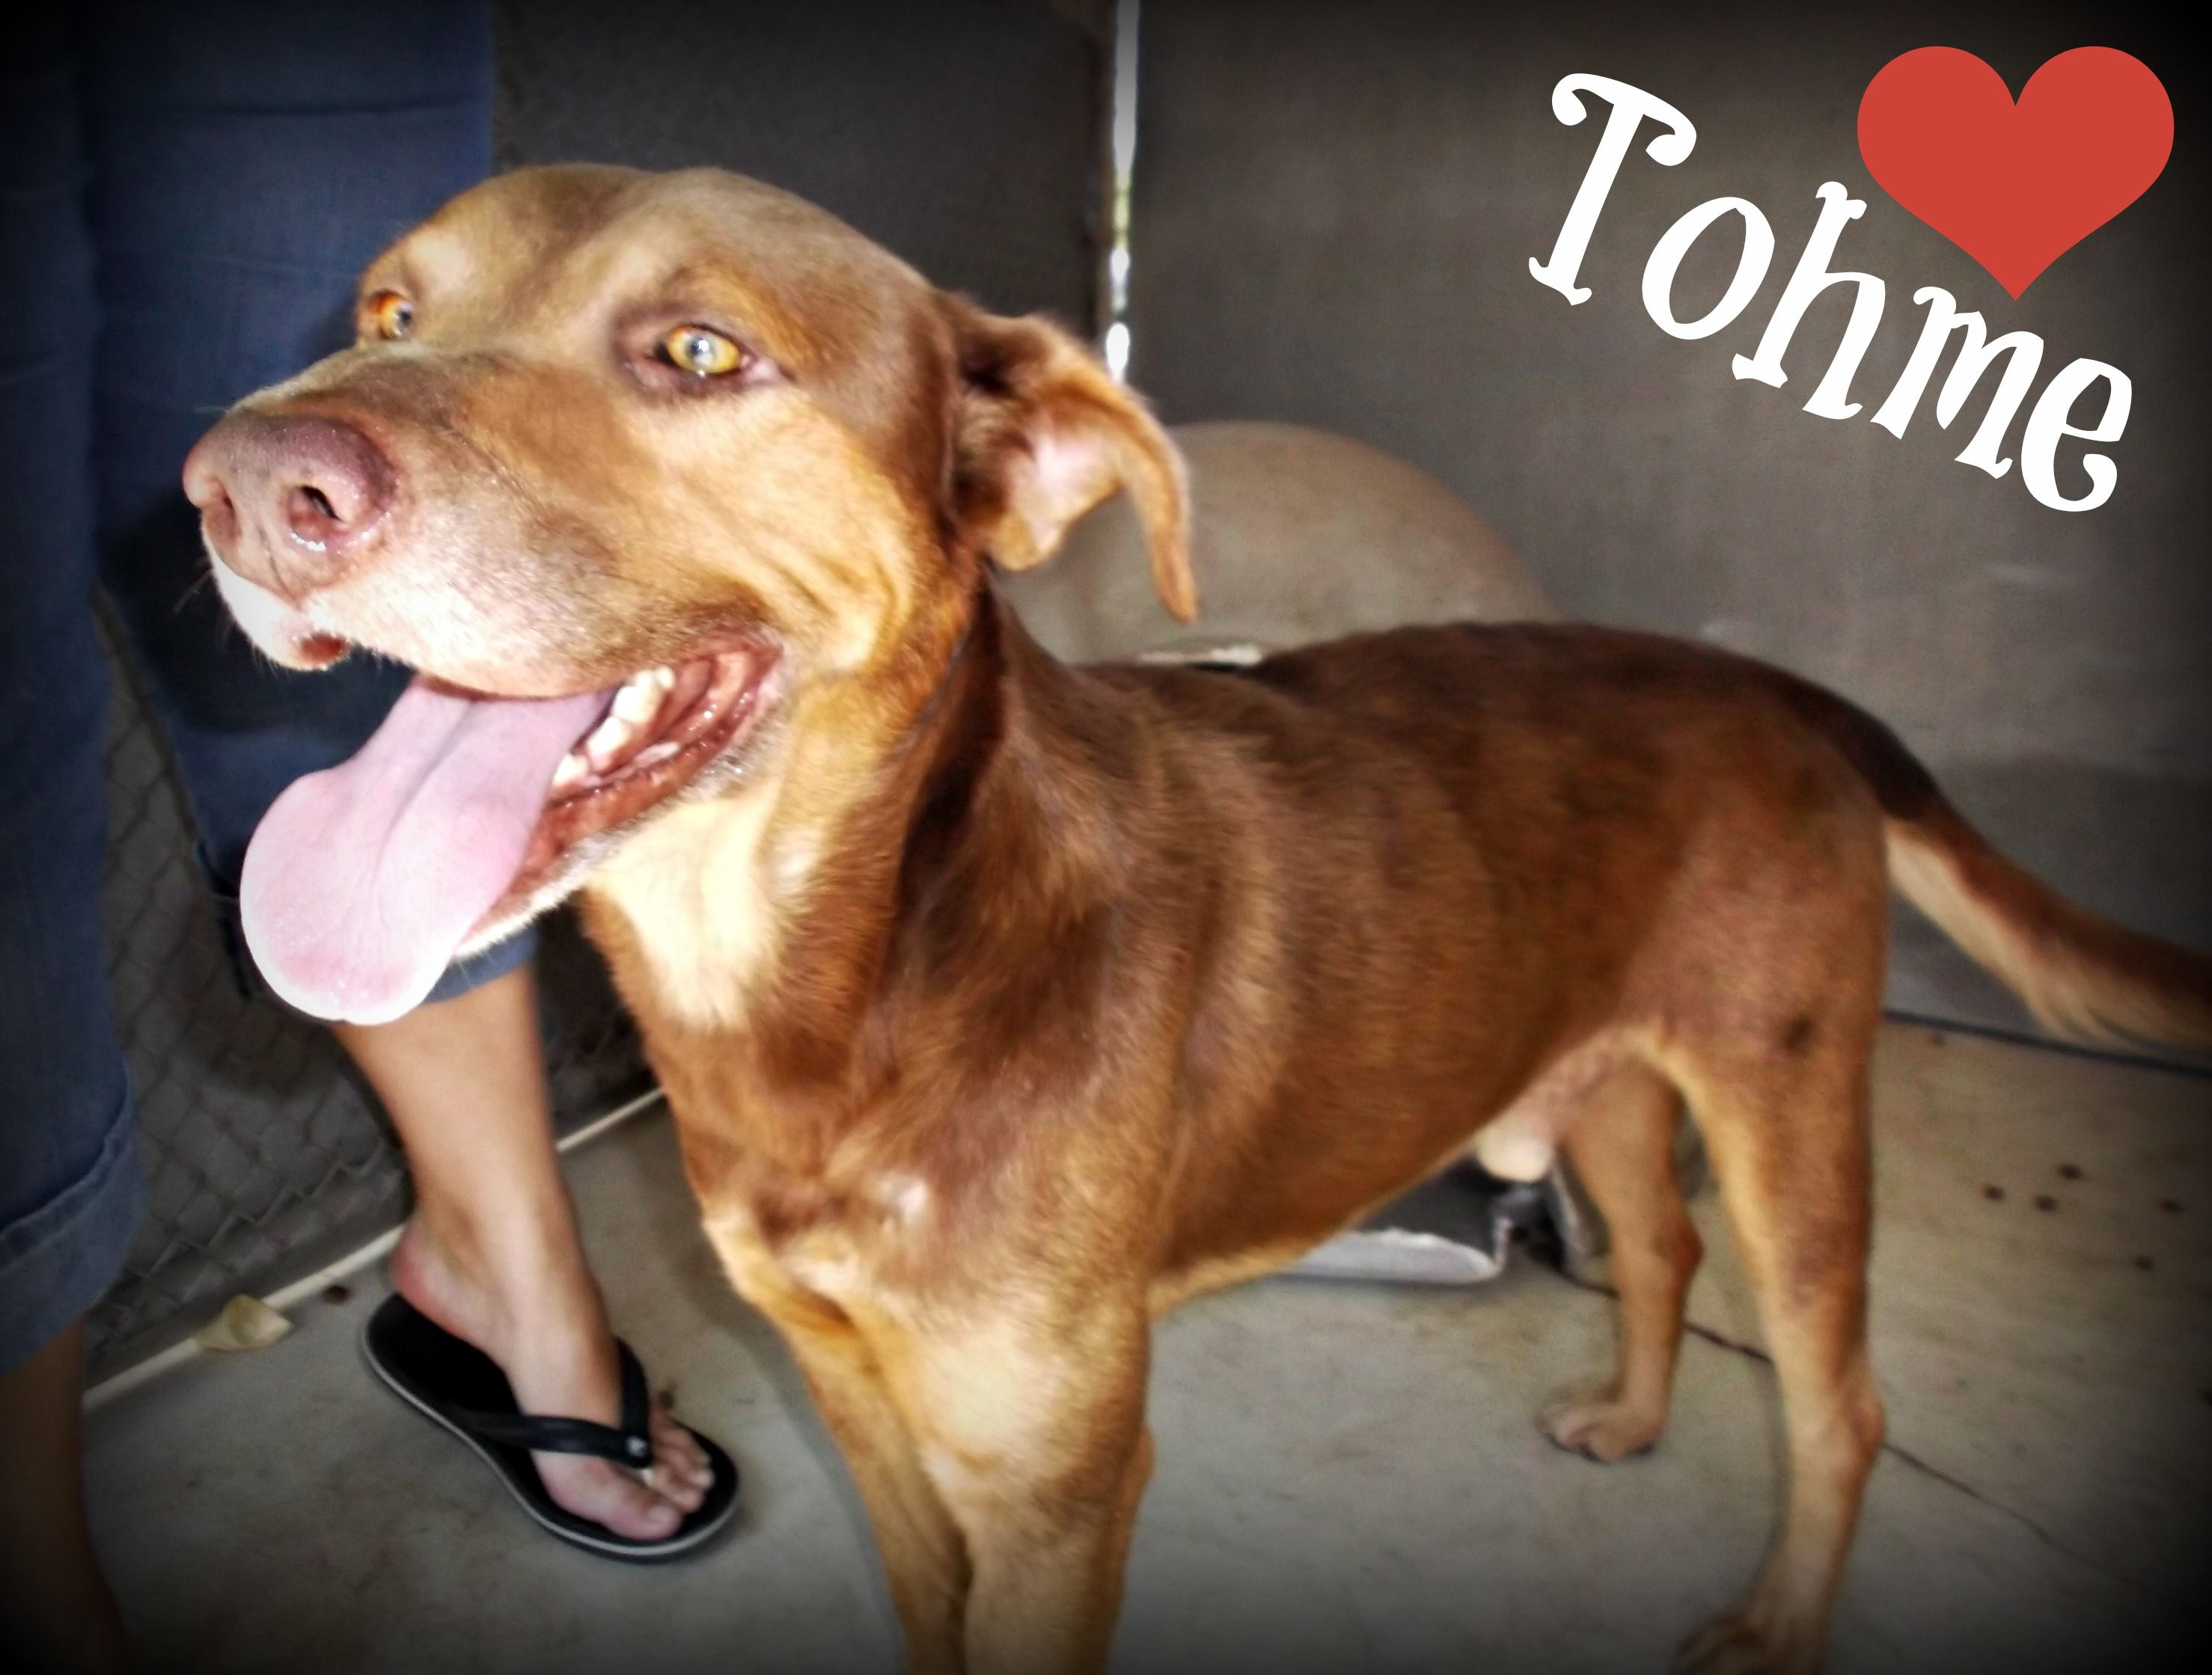 Meet Tohme! This handsome German Shepherd mix is available